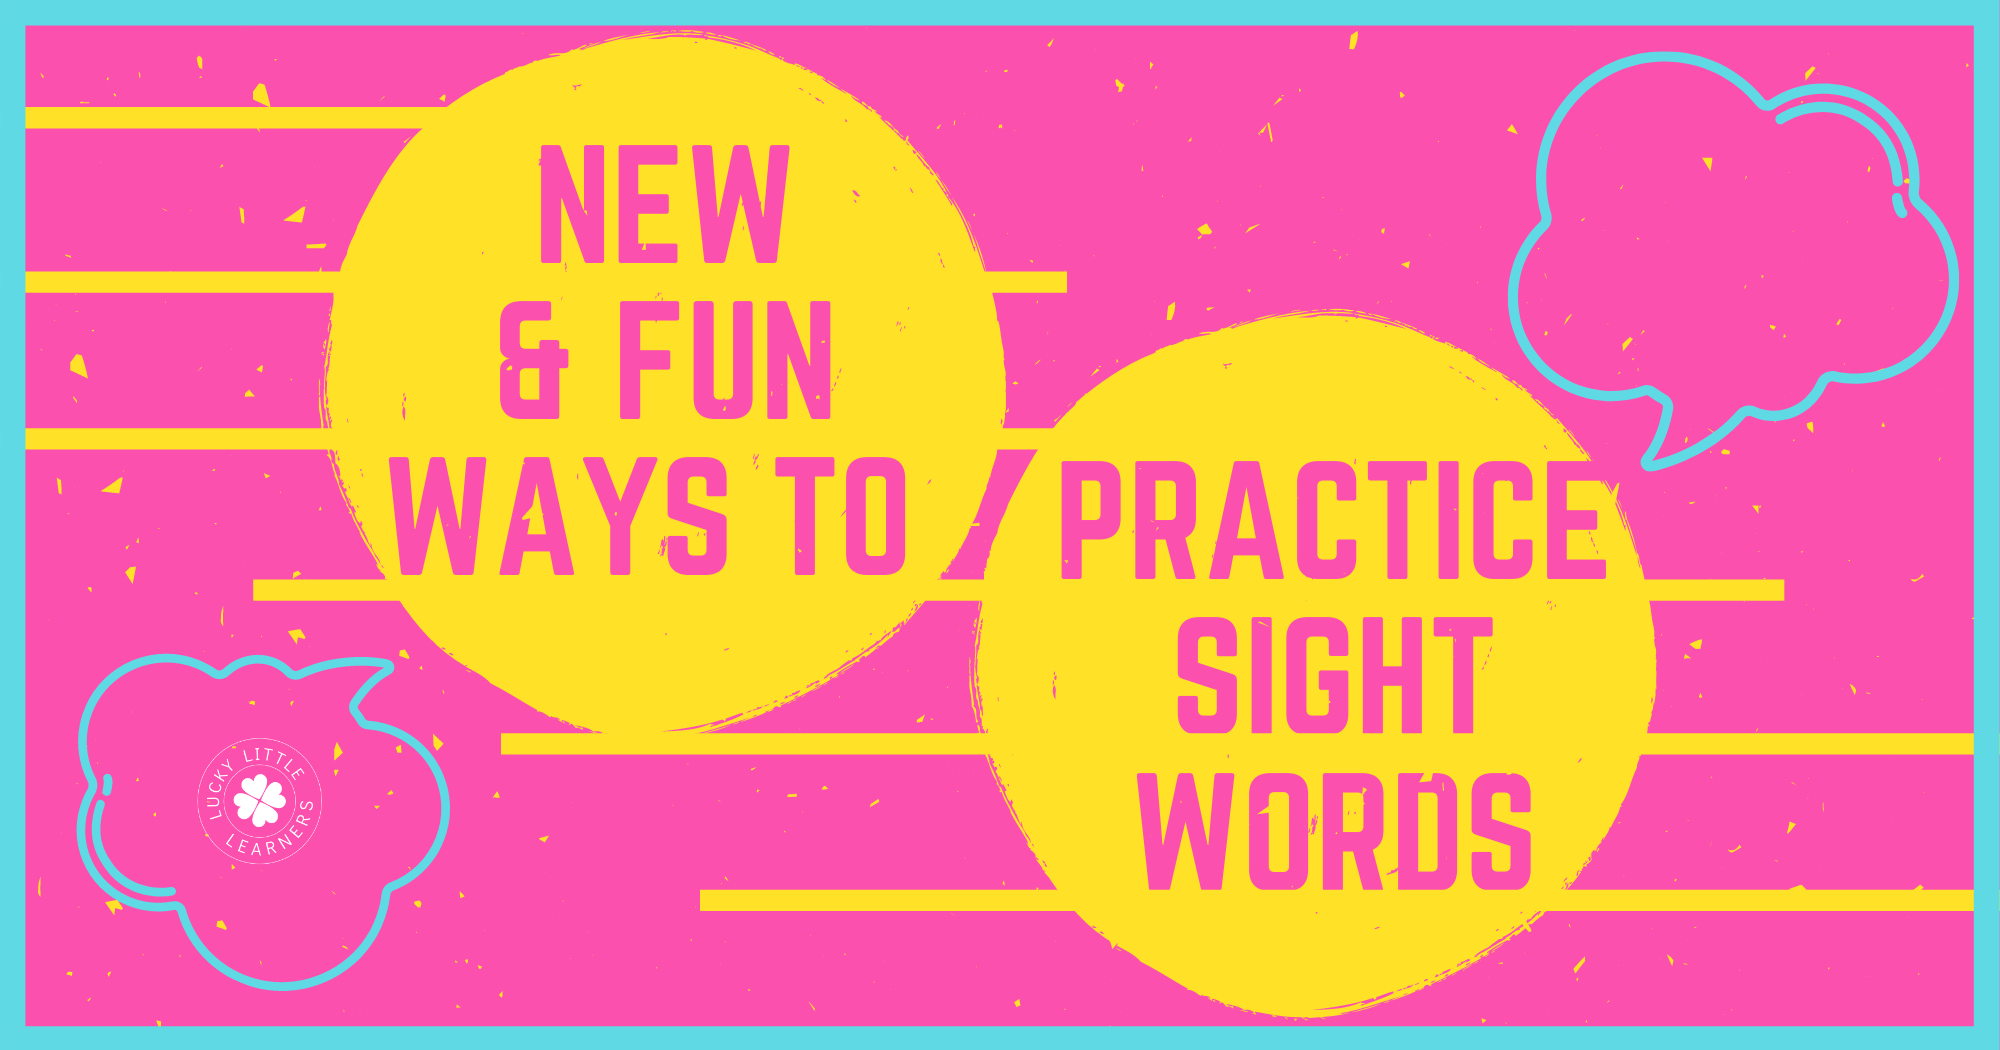 New and FUN Ways to Practice Sight Words